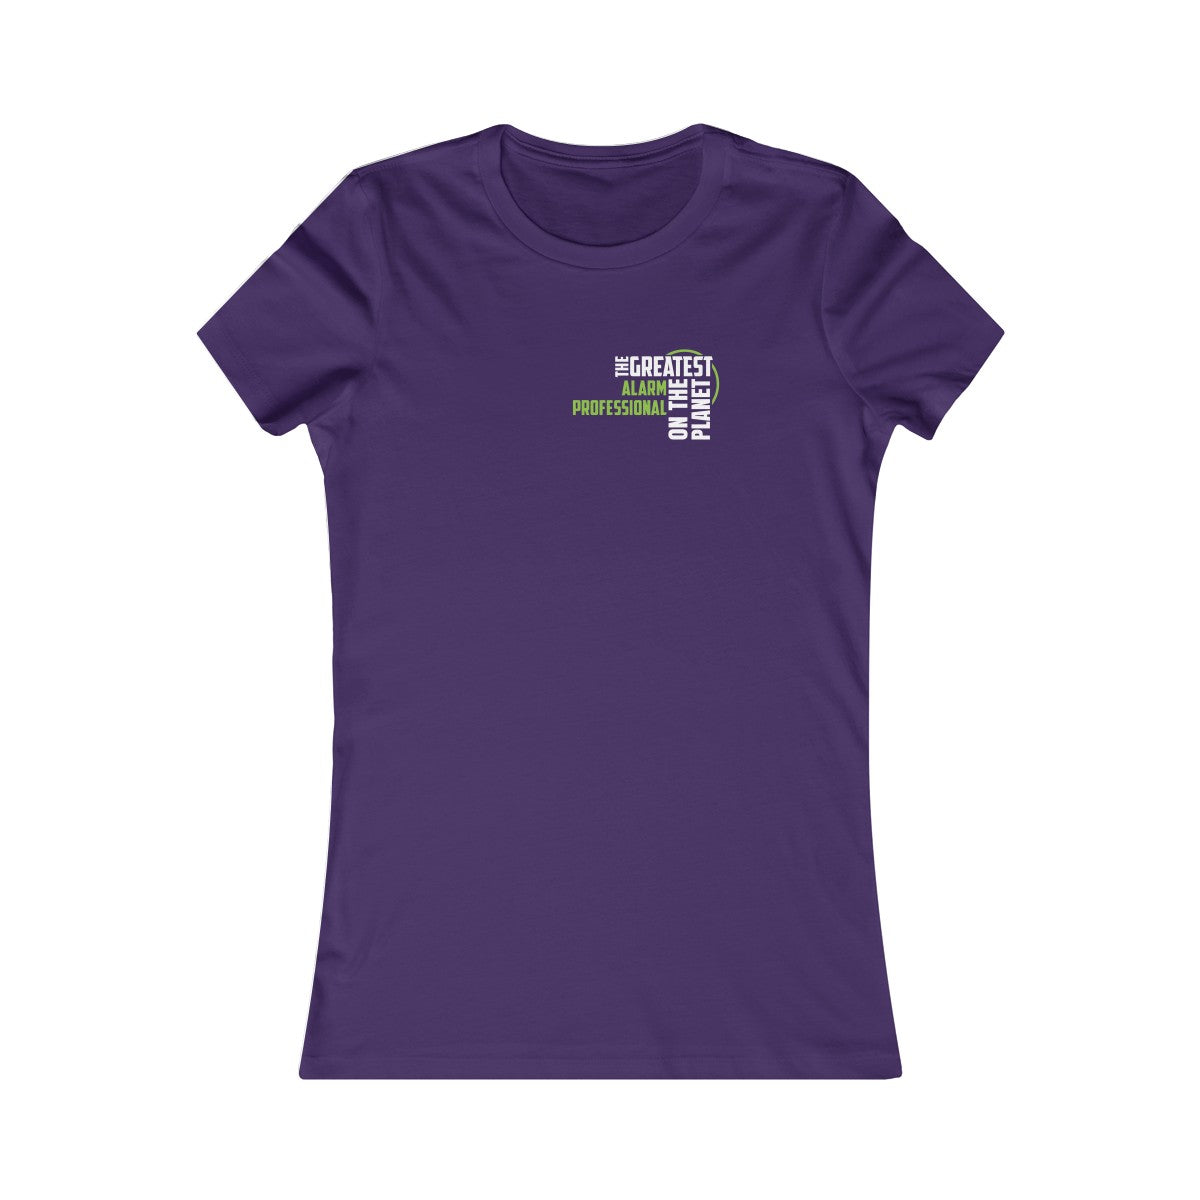 Women's T-shirt - Alarm Professional